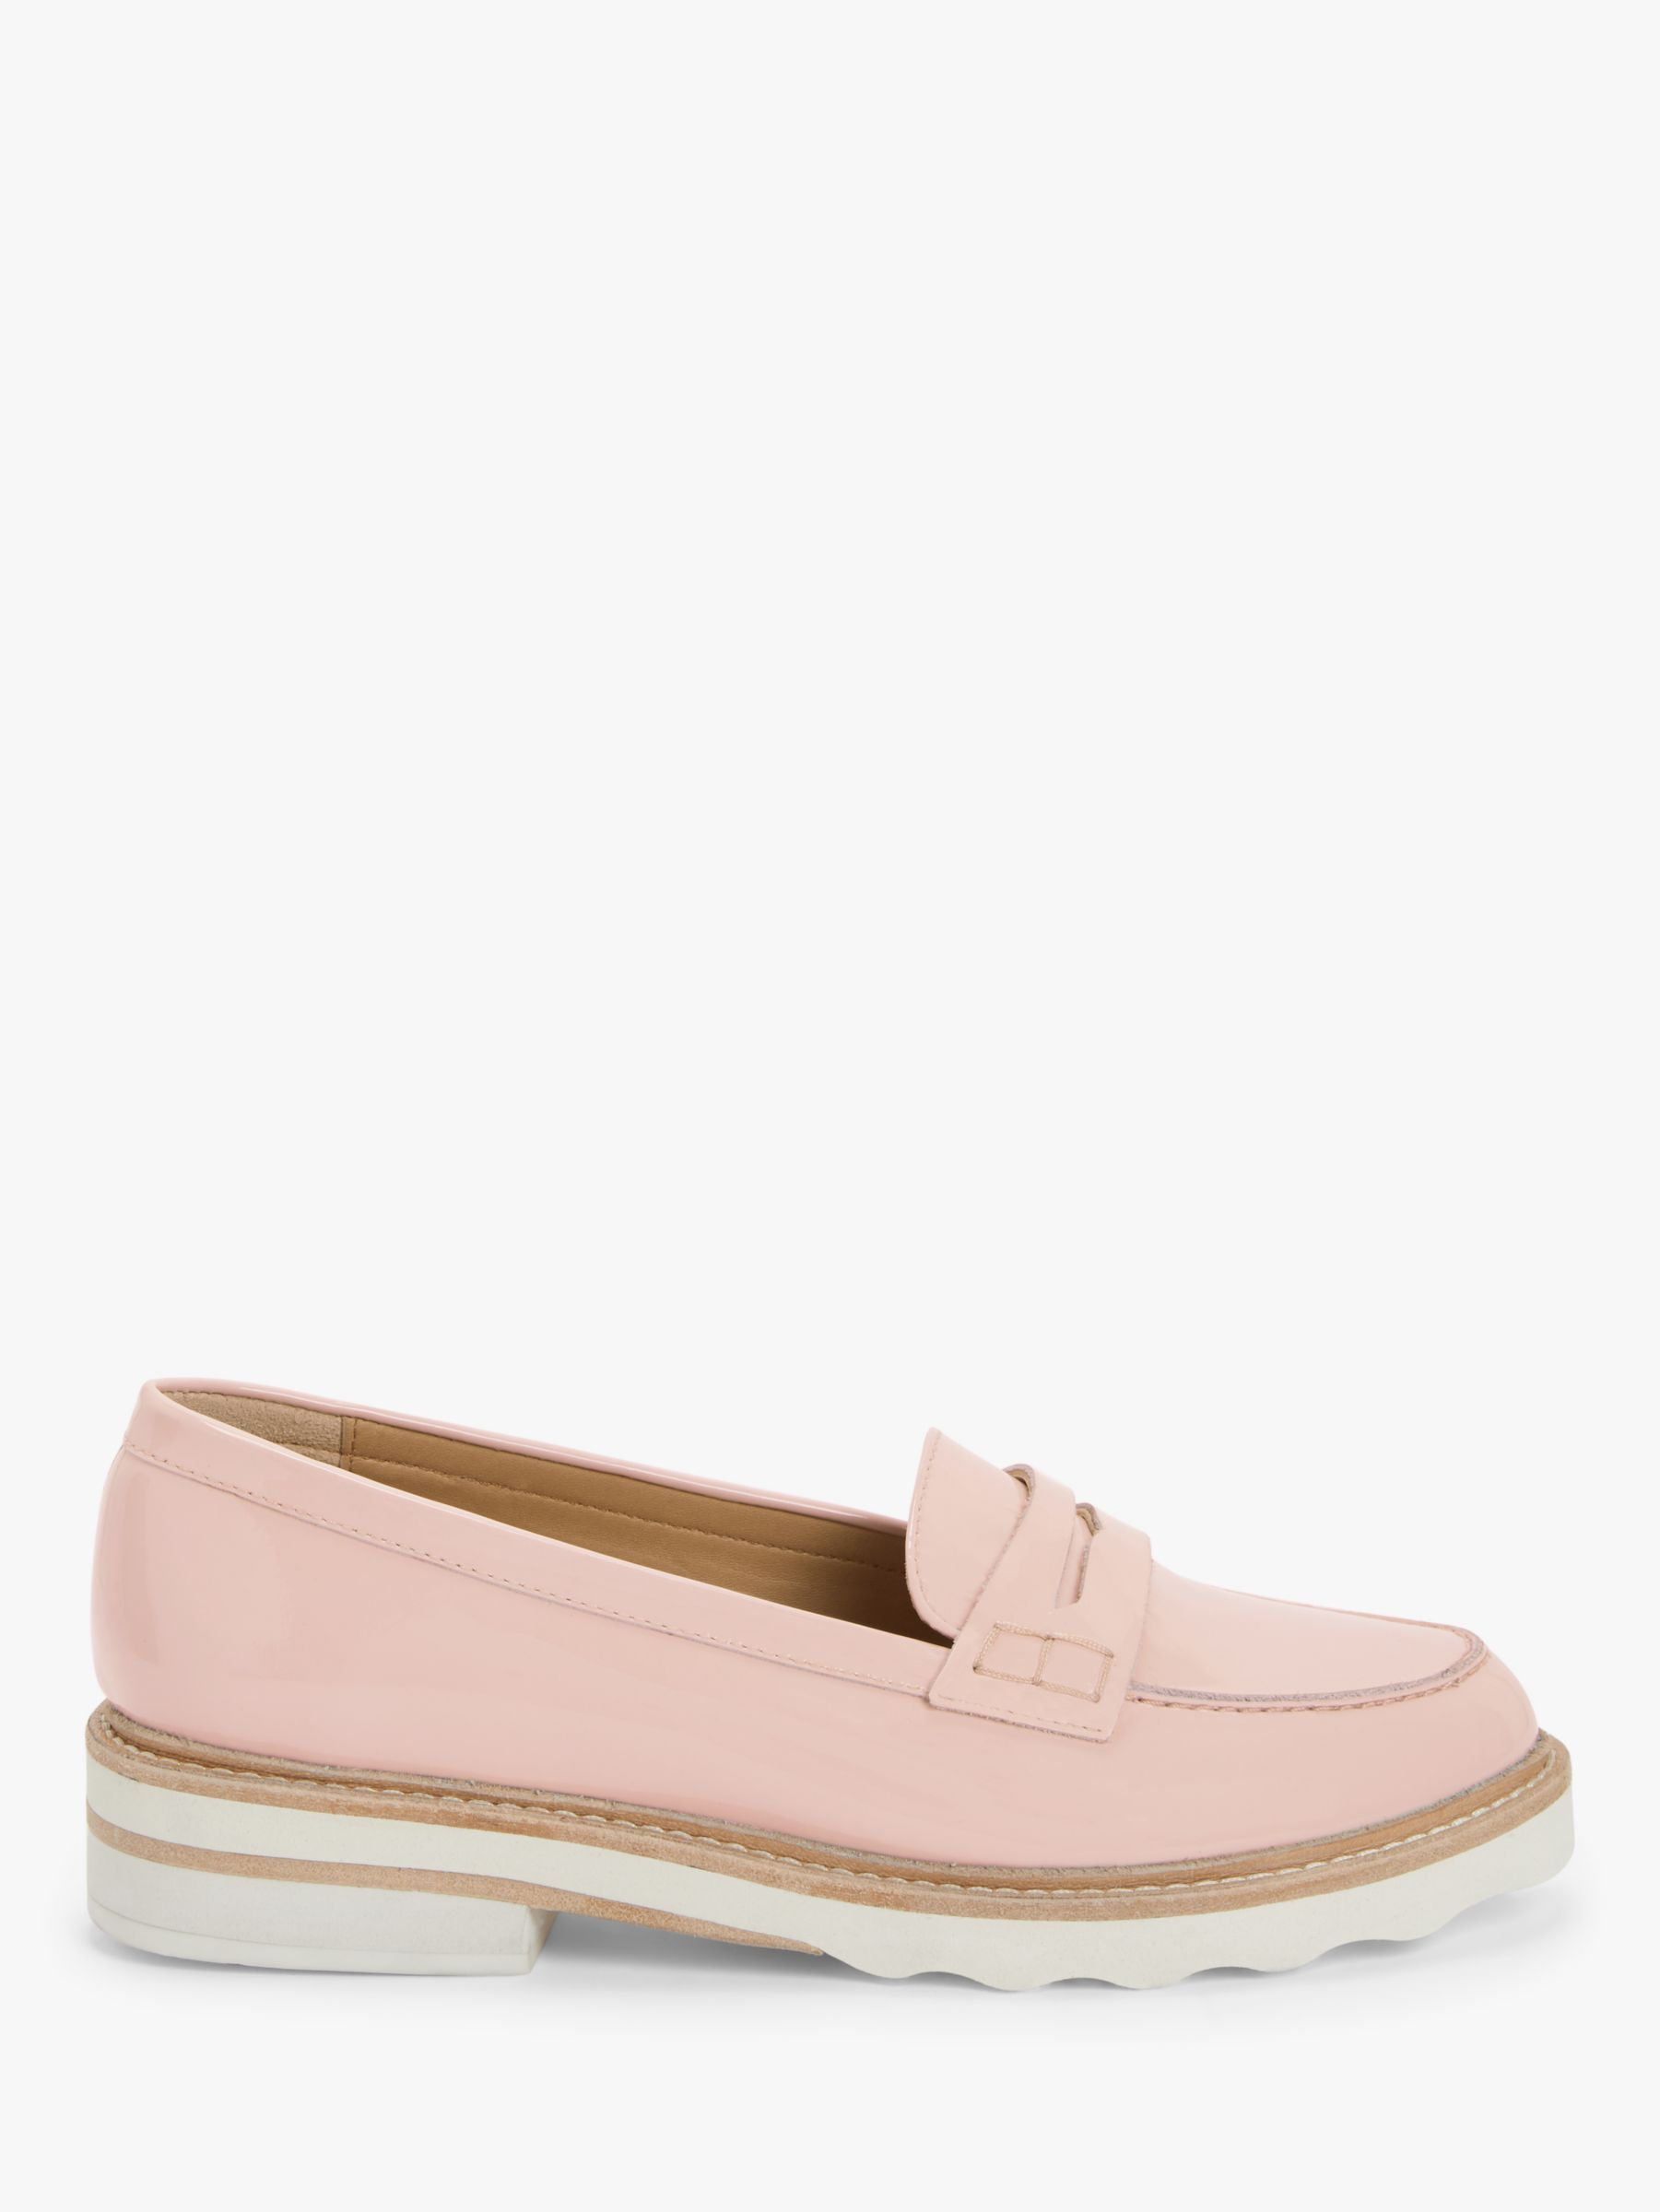 John Lewis John Lewis & Partners Ginnie Leather Stitch Detail Loafers, Blush